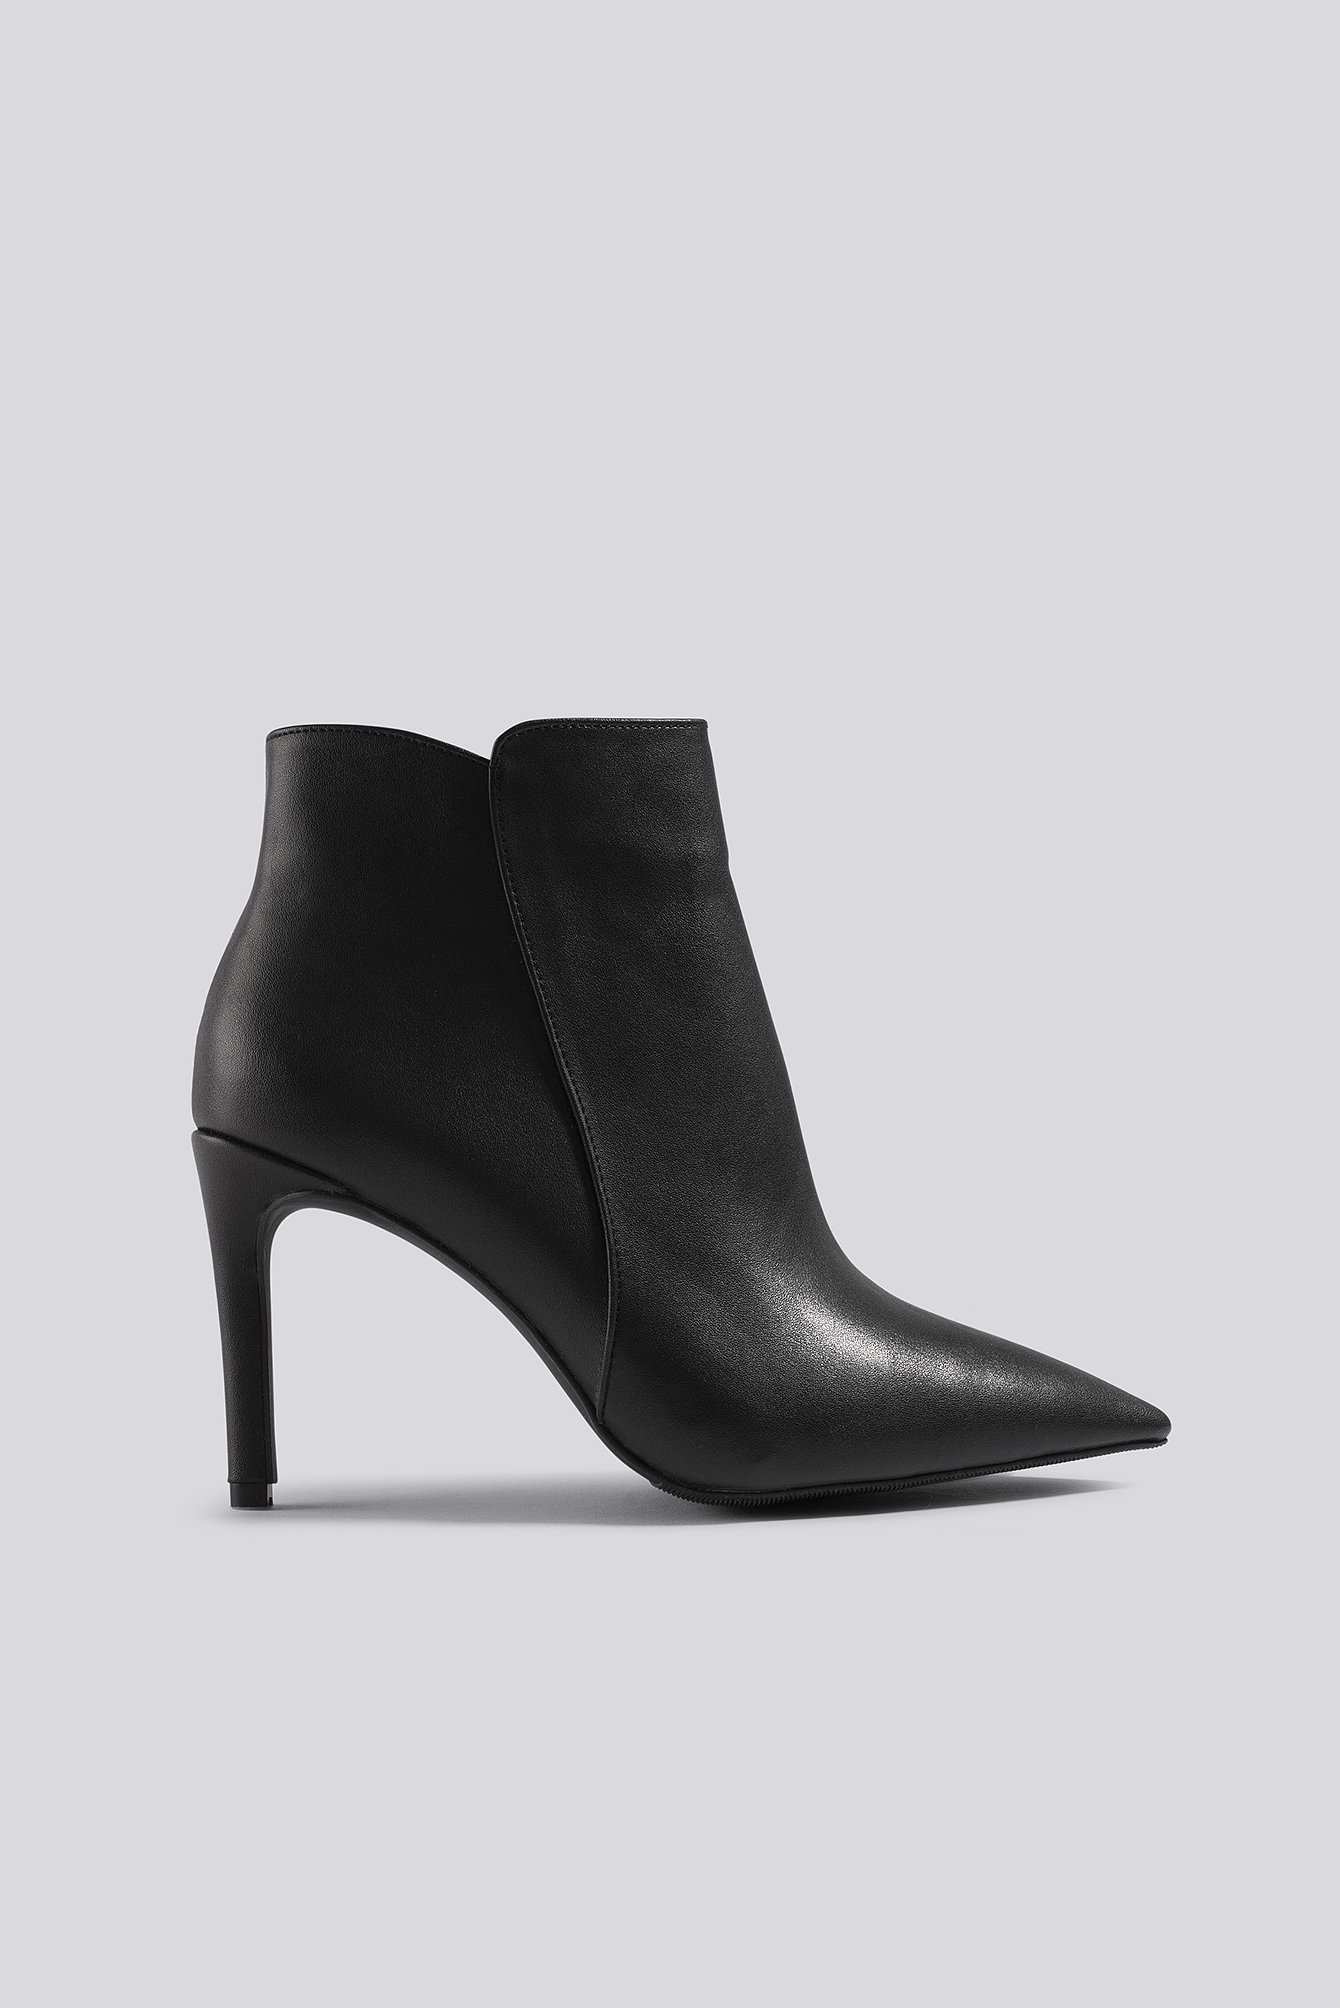 na-kd shoes -  Warm Lined Stiletto Boots - Black